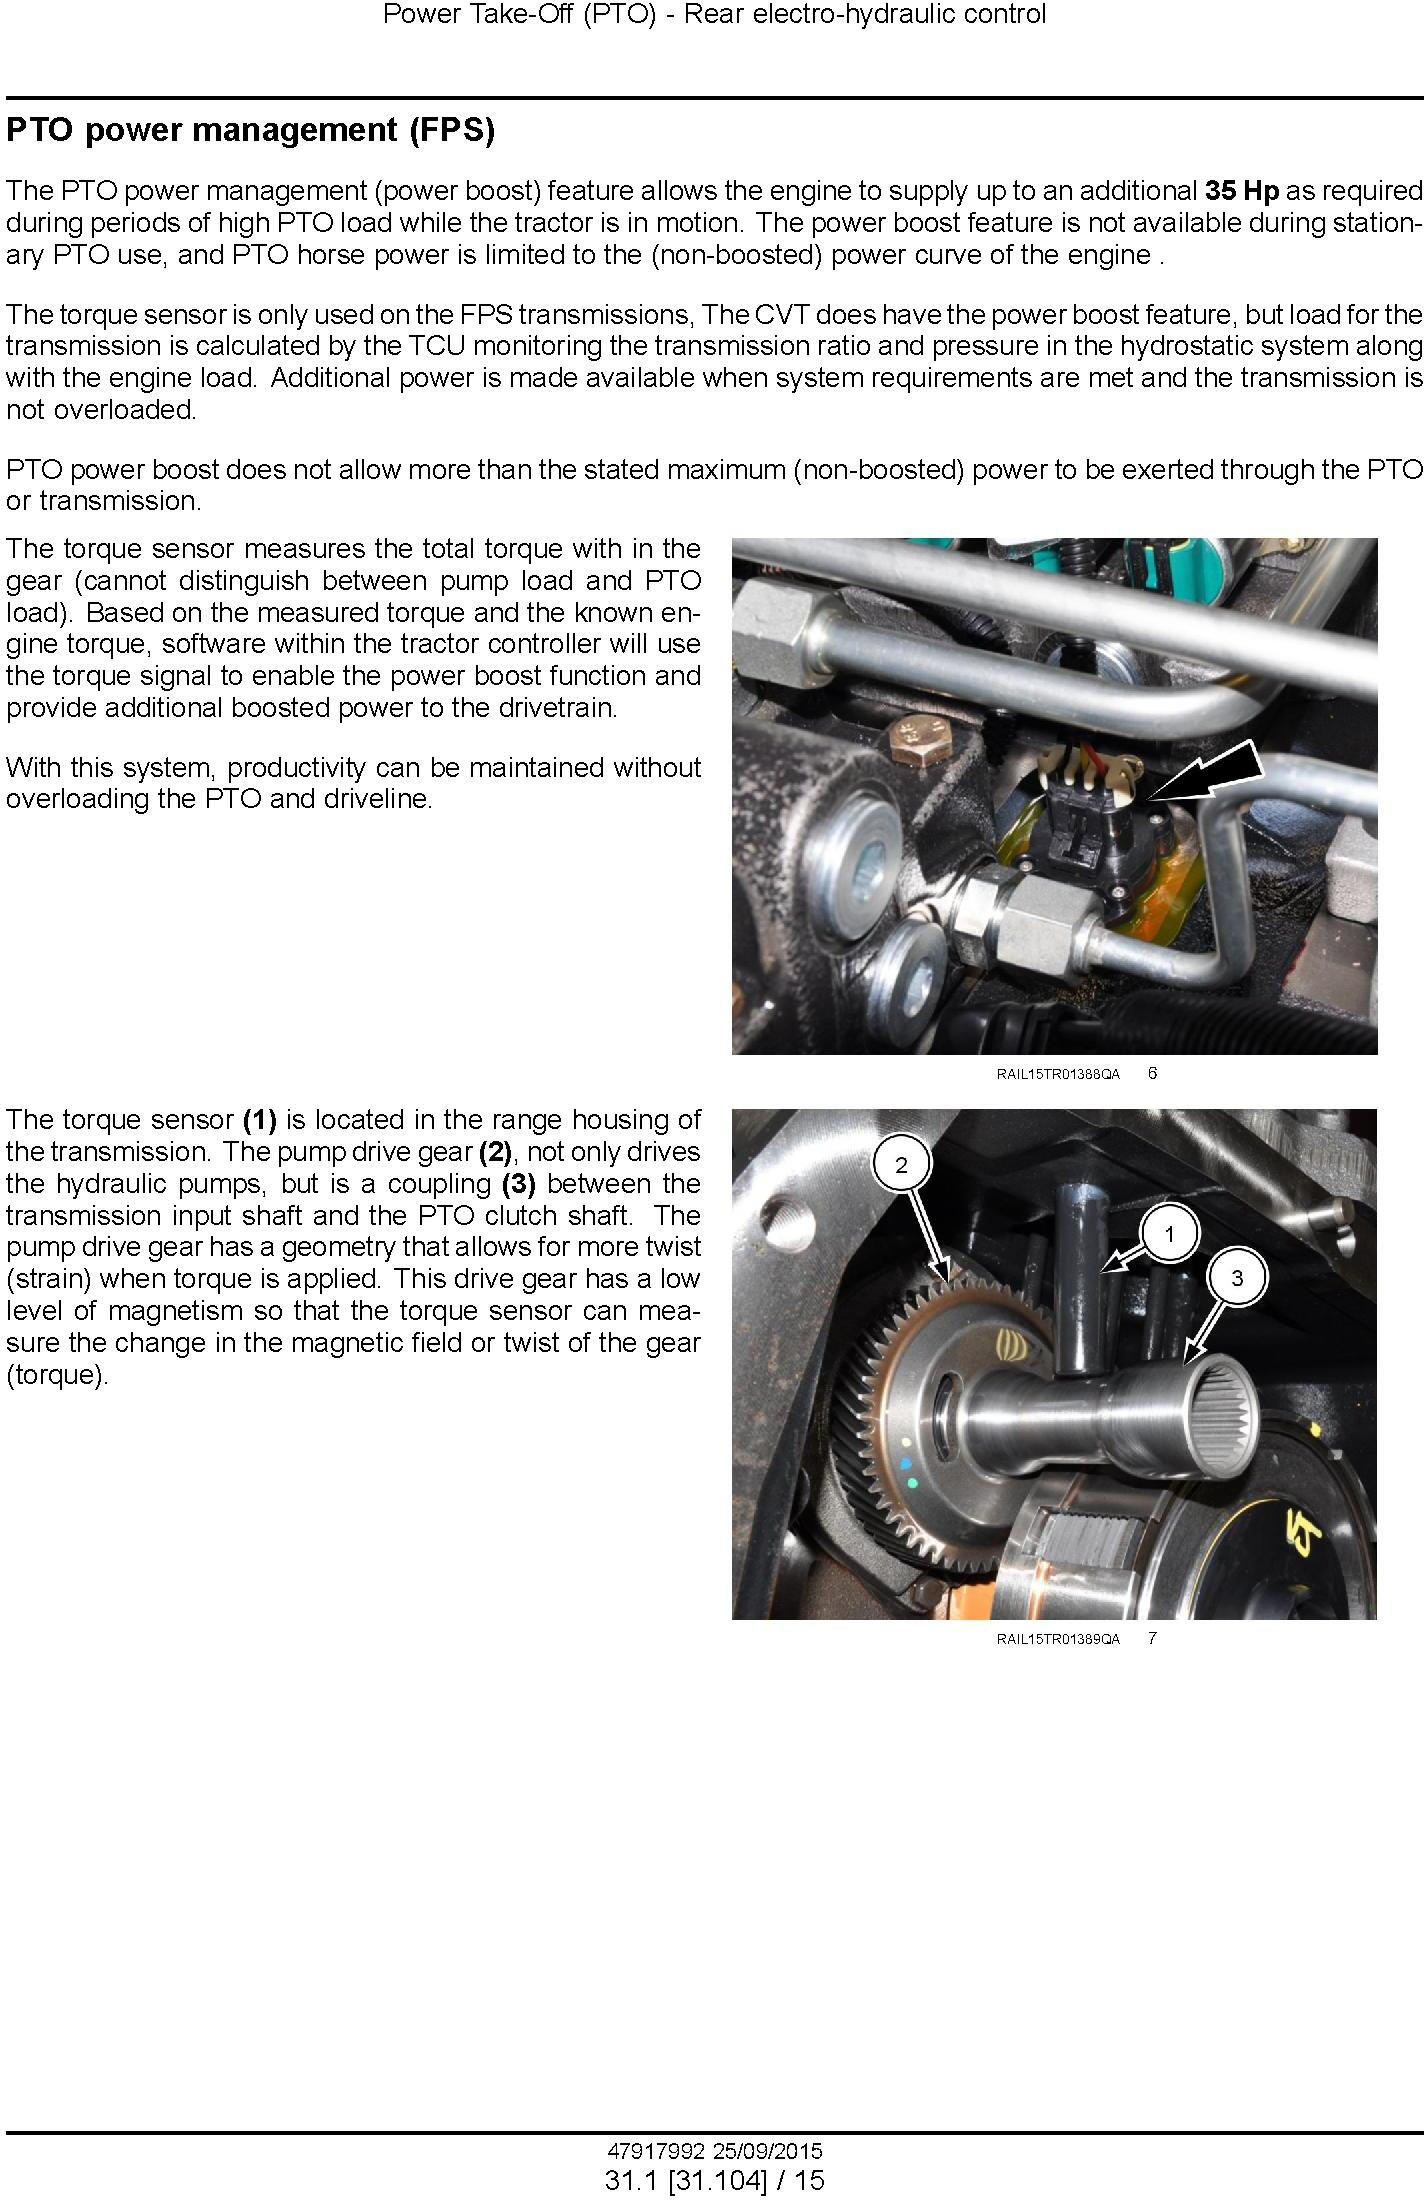 New Holland T8.320, T8.350, T8.380, T8.410, T8.435 and SmartTrax CVT Tractor Service Manual (Europe) - 2